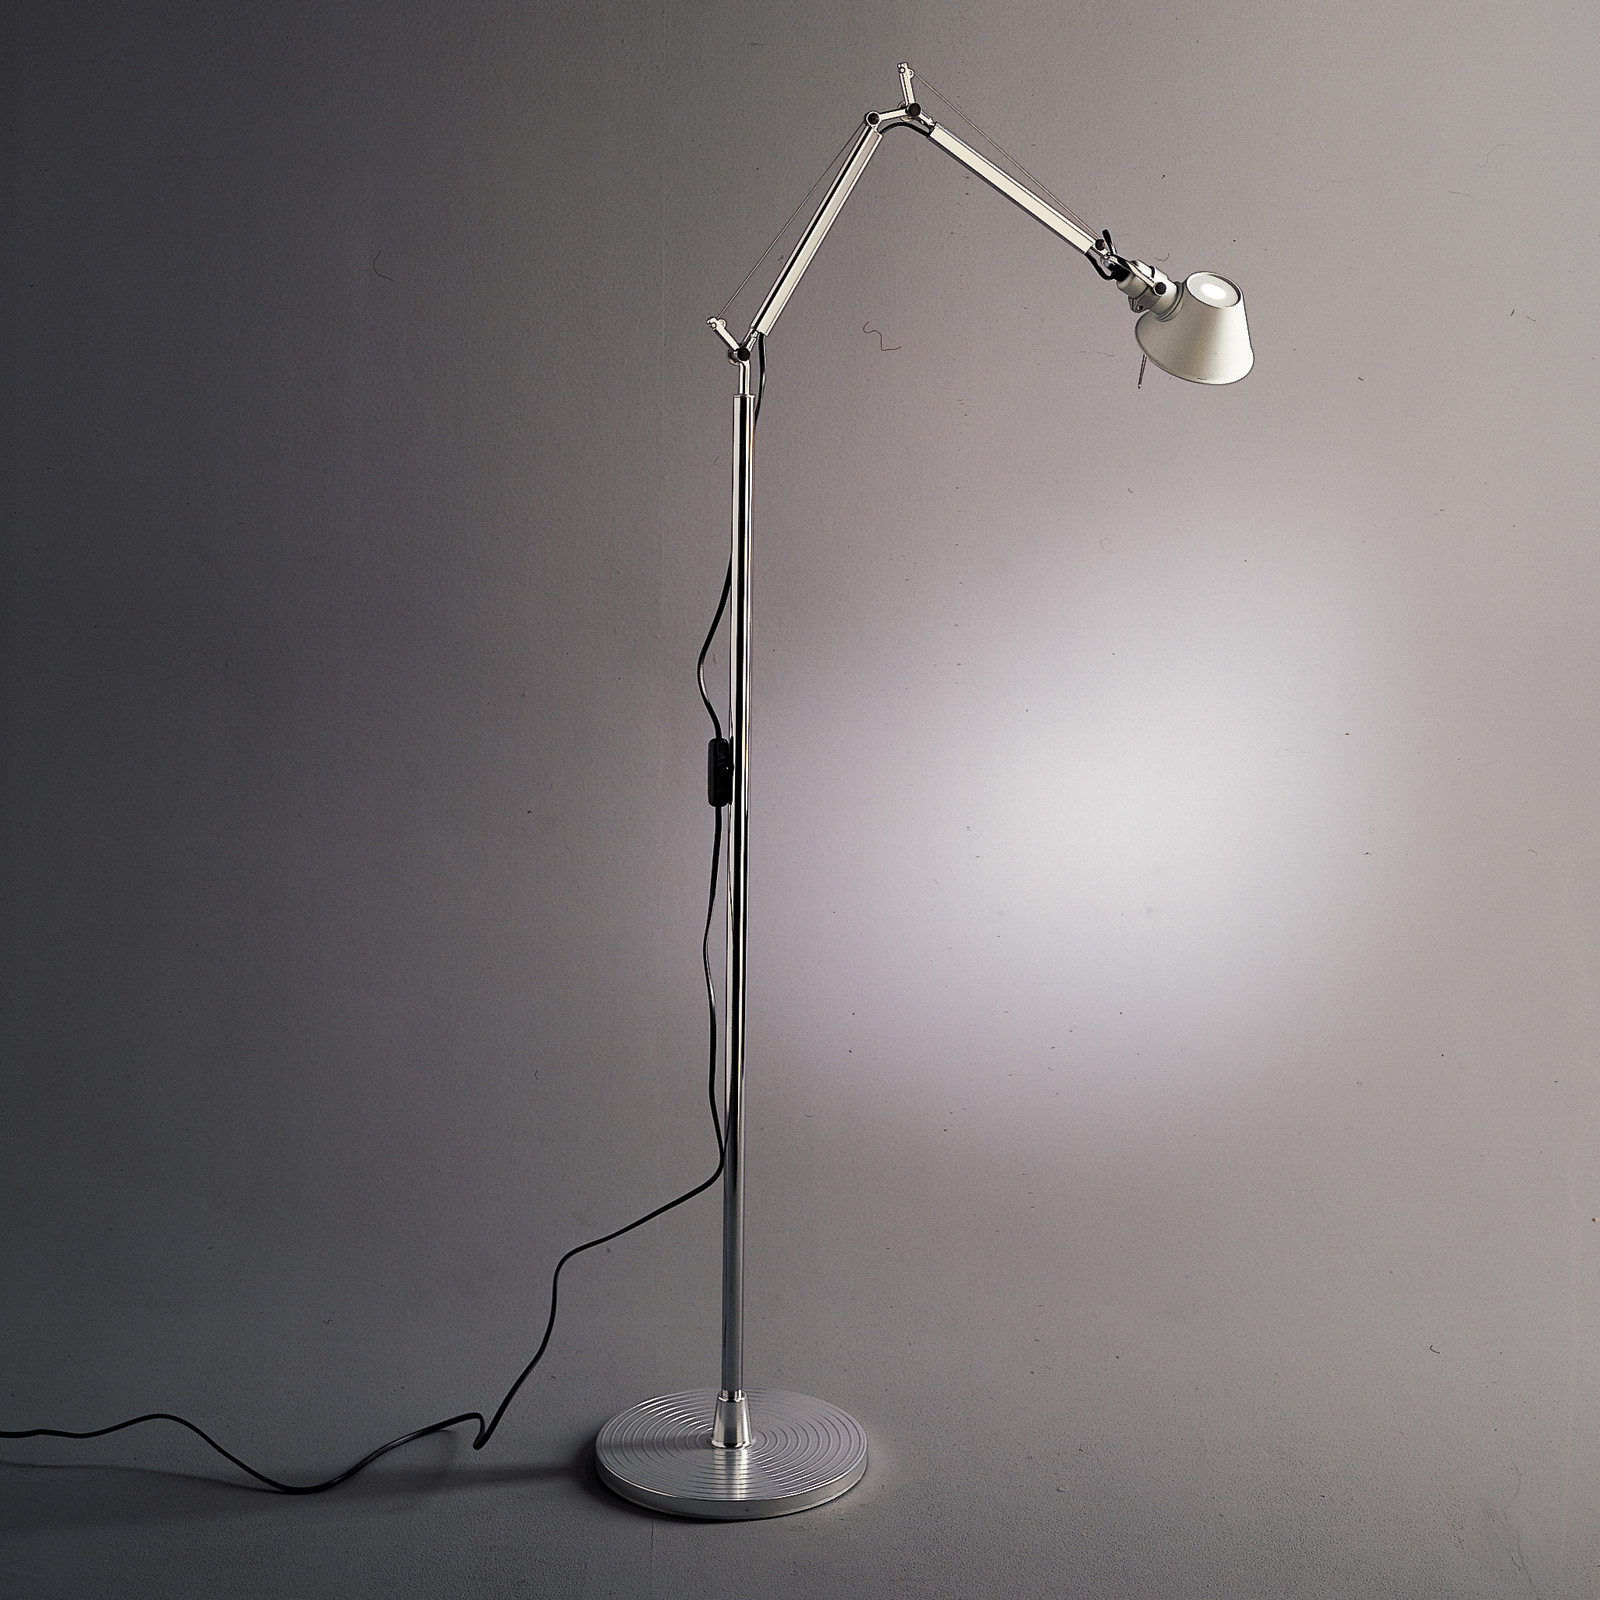 Artemide-Tolomeo-Micro-Floor-Lamp_color-temperature-3000K_LED-version-is-tested-in-accordance-with-IES-LM-79-08_Metal_